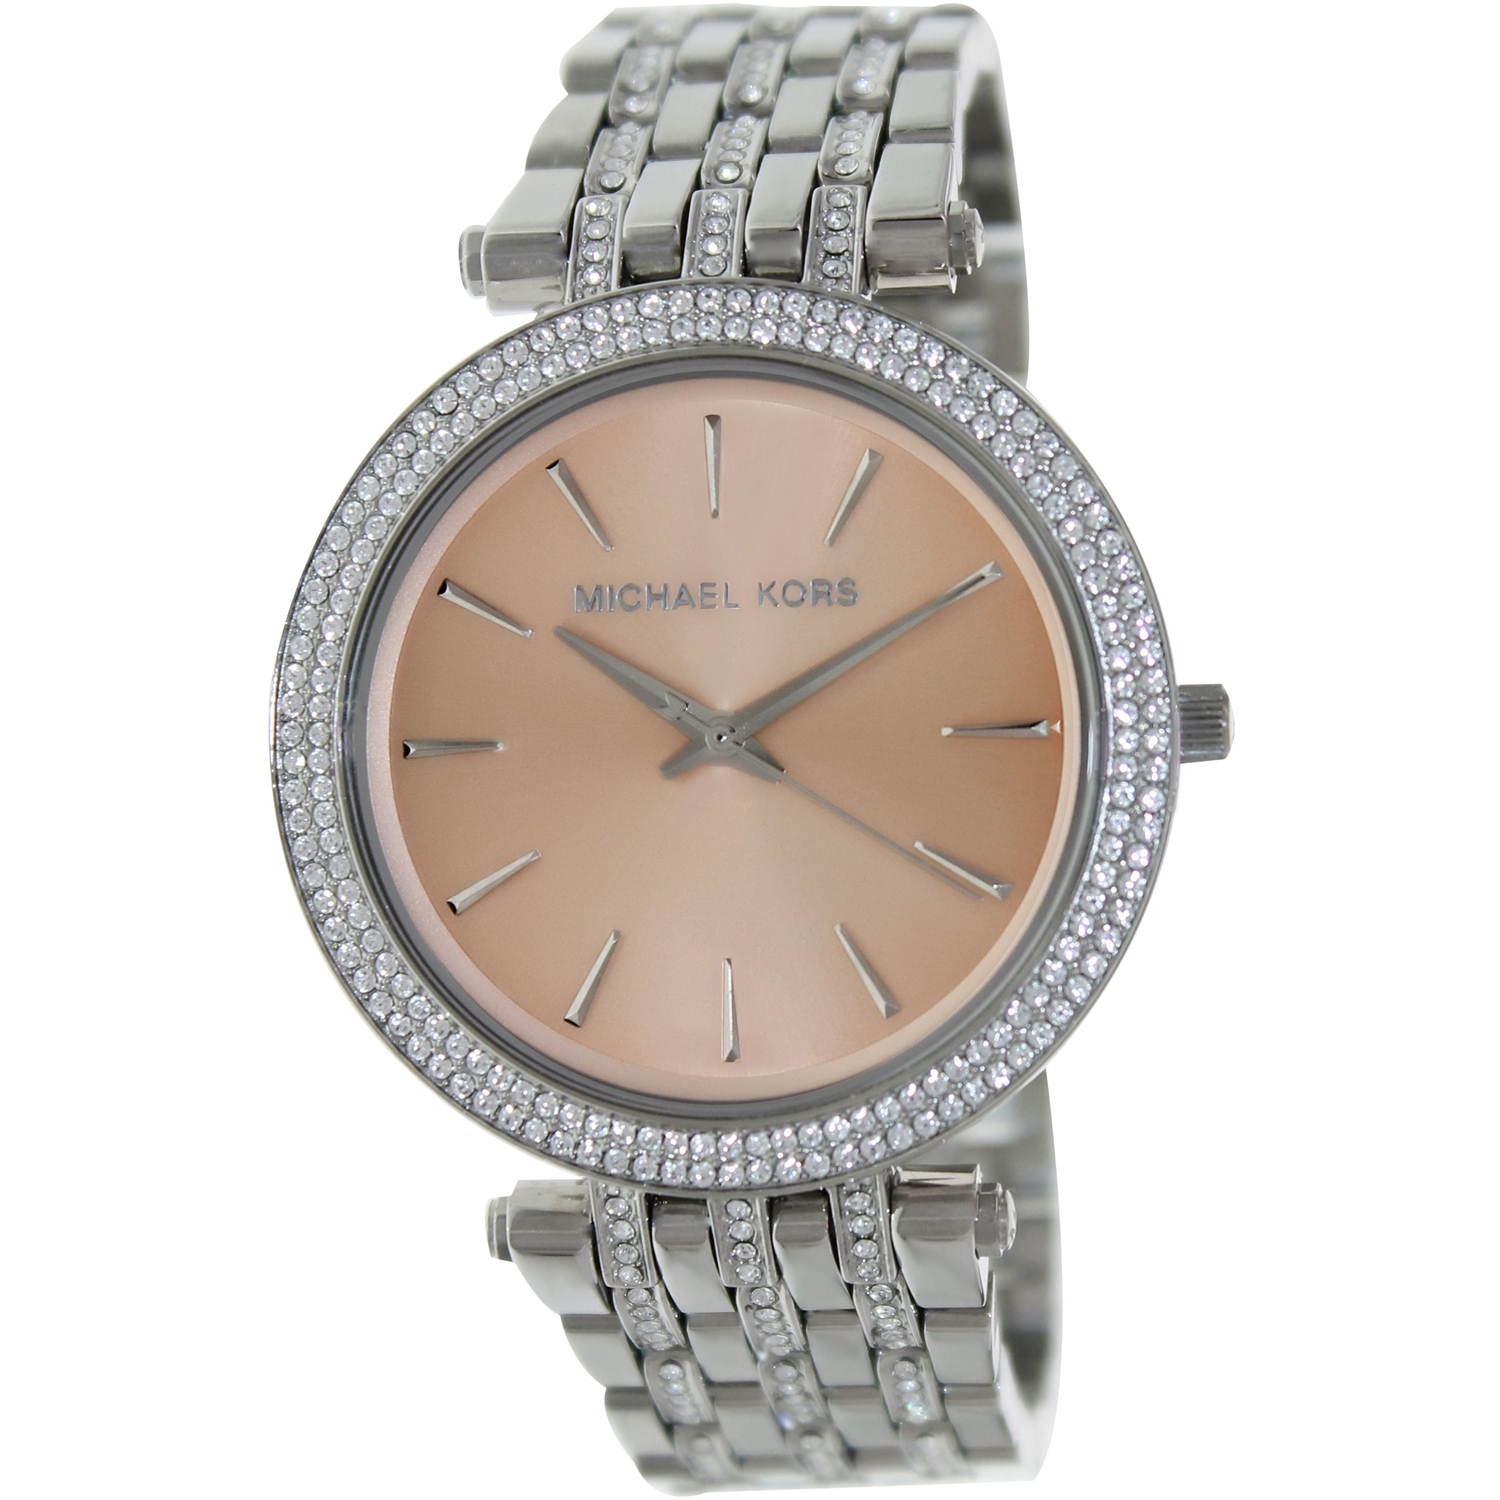 Michael Kors Women's Darci MK3218 Silver Glitter Stainless-Steel Japanese Quartz Fashion Watch